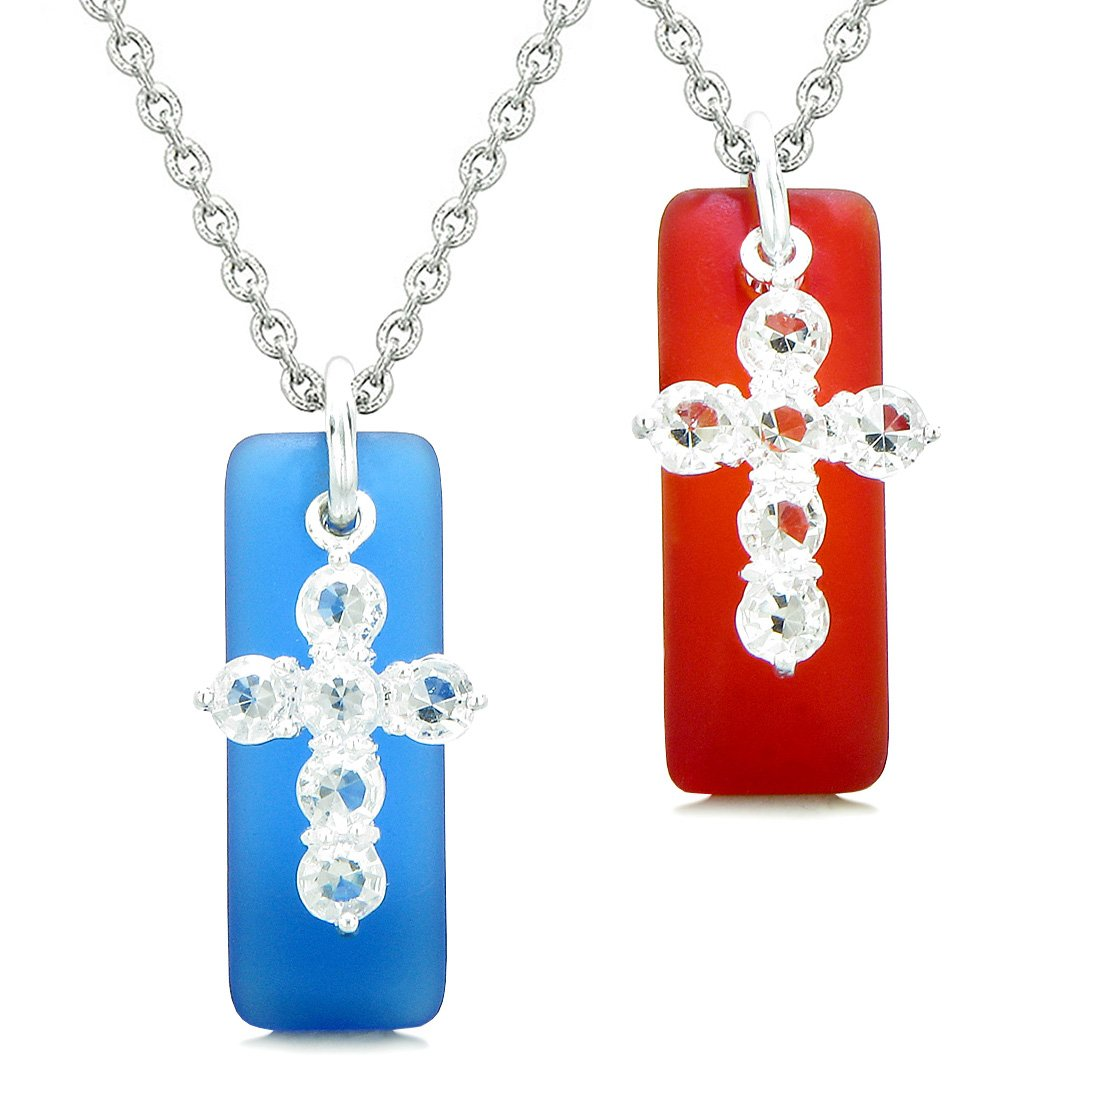 Sea Glass Ocean Blue and Royal Red Tags Crystal Cross Love Couples BFF Set Protection Amulet Necklaces